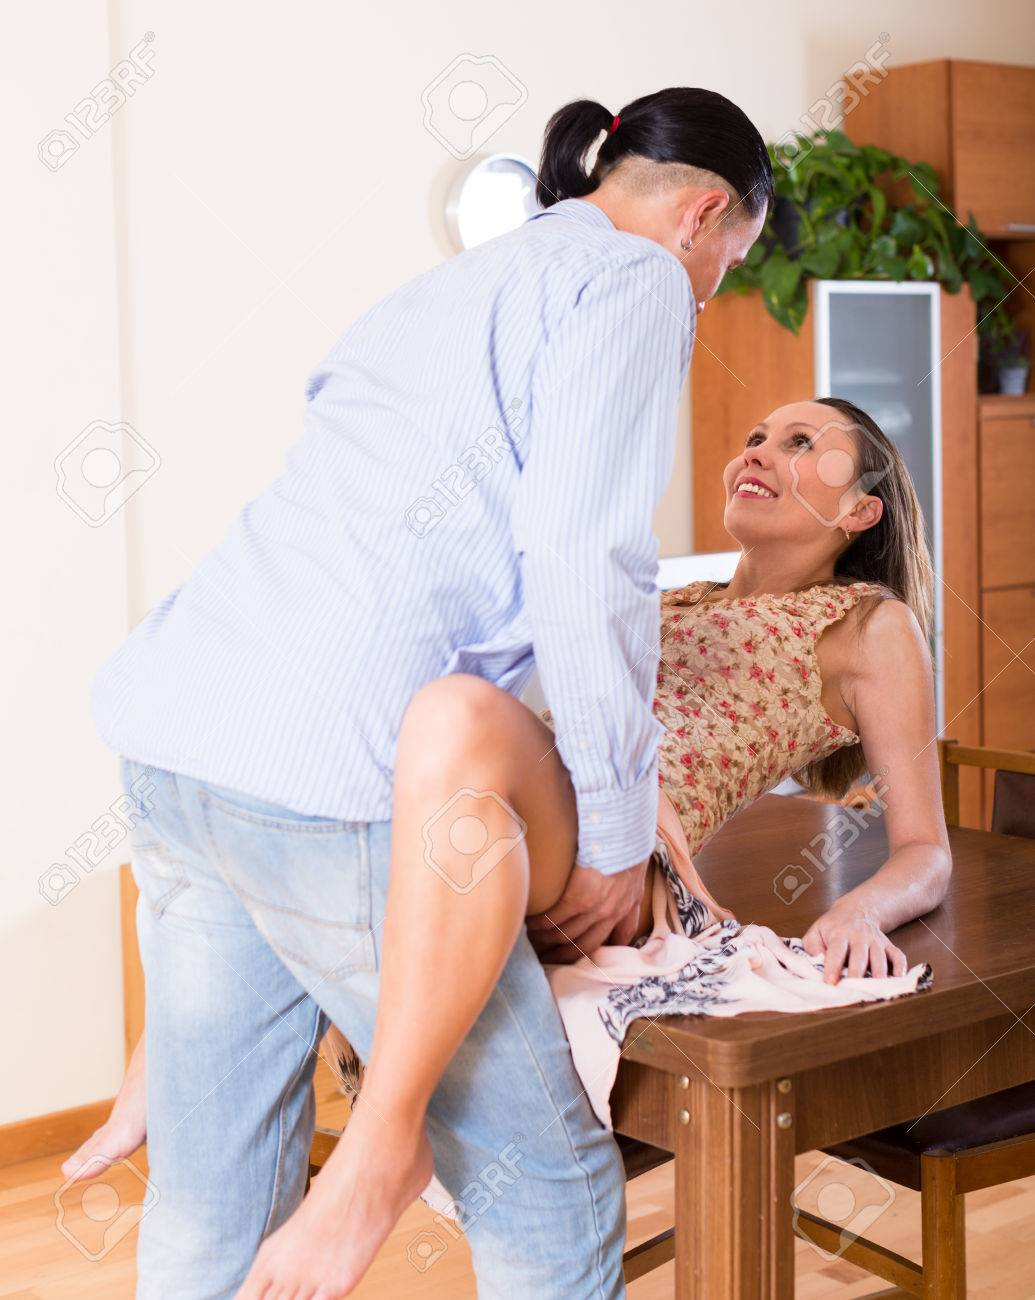 Picture of adult having sex